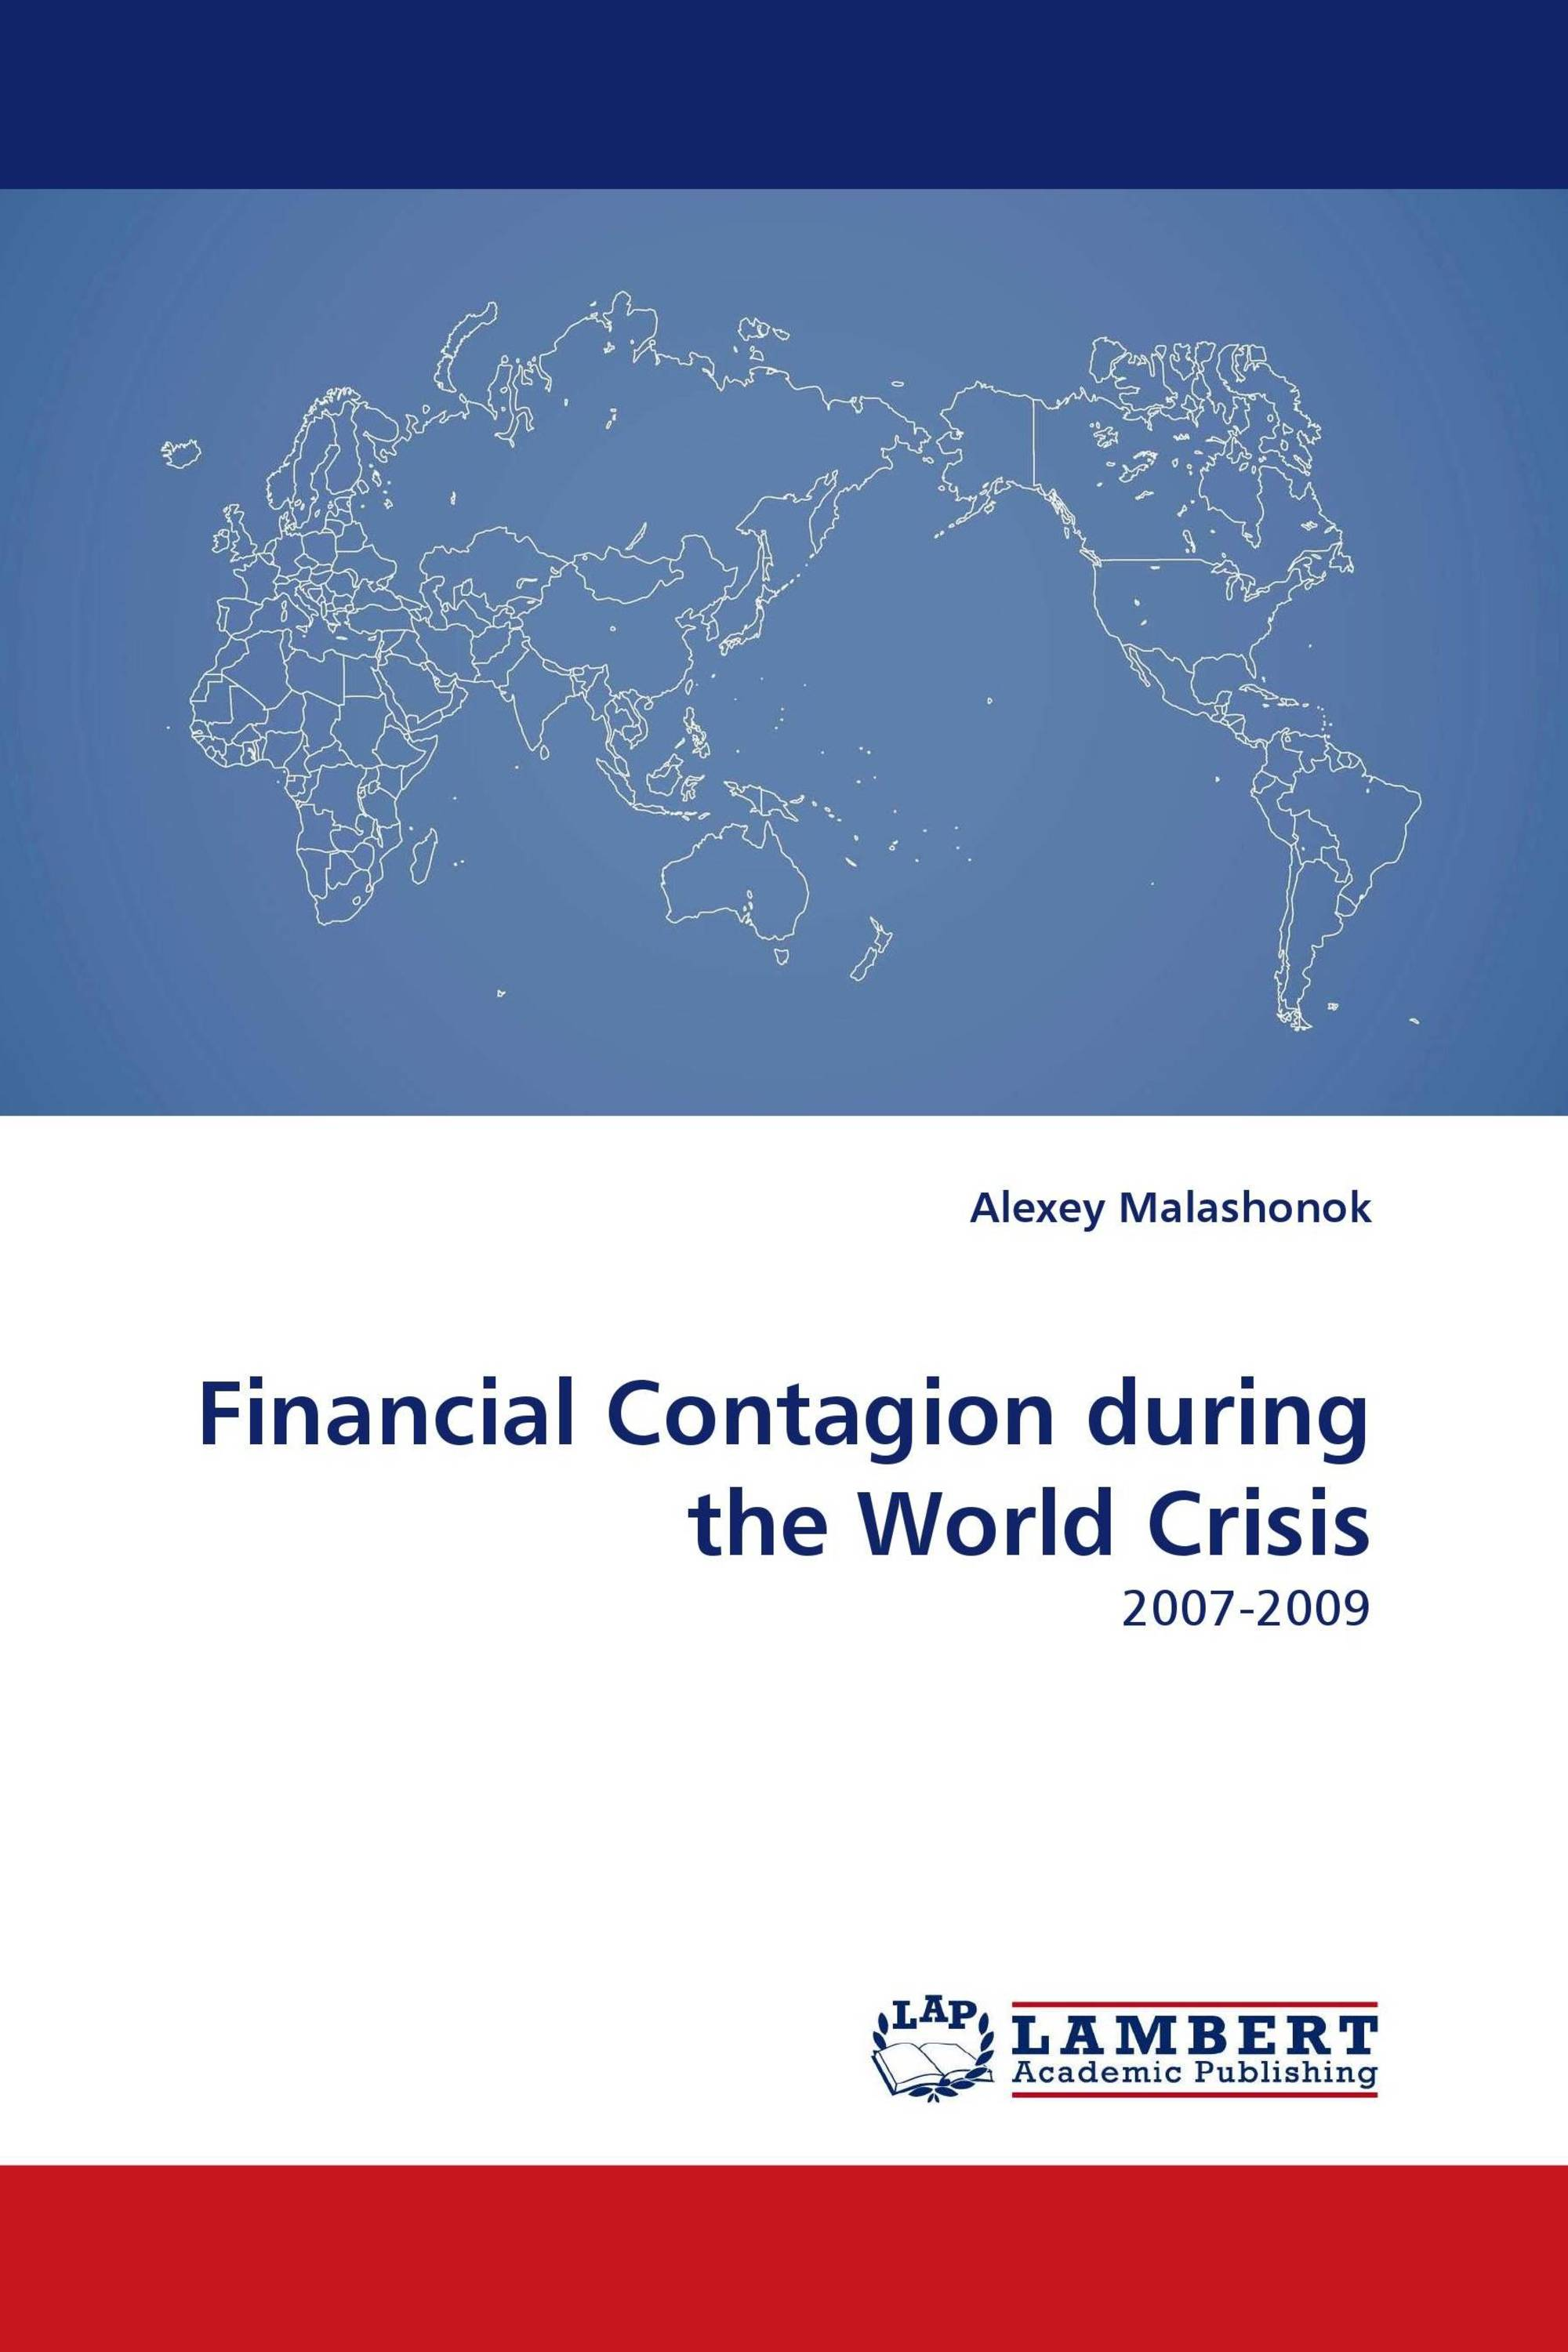 Financial Contagion during the World Crisis